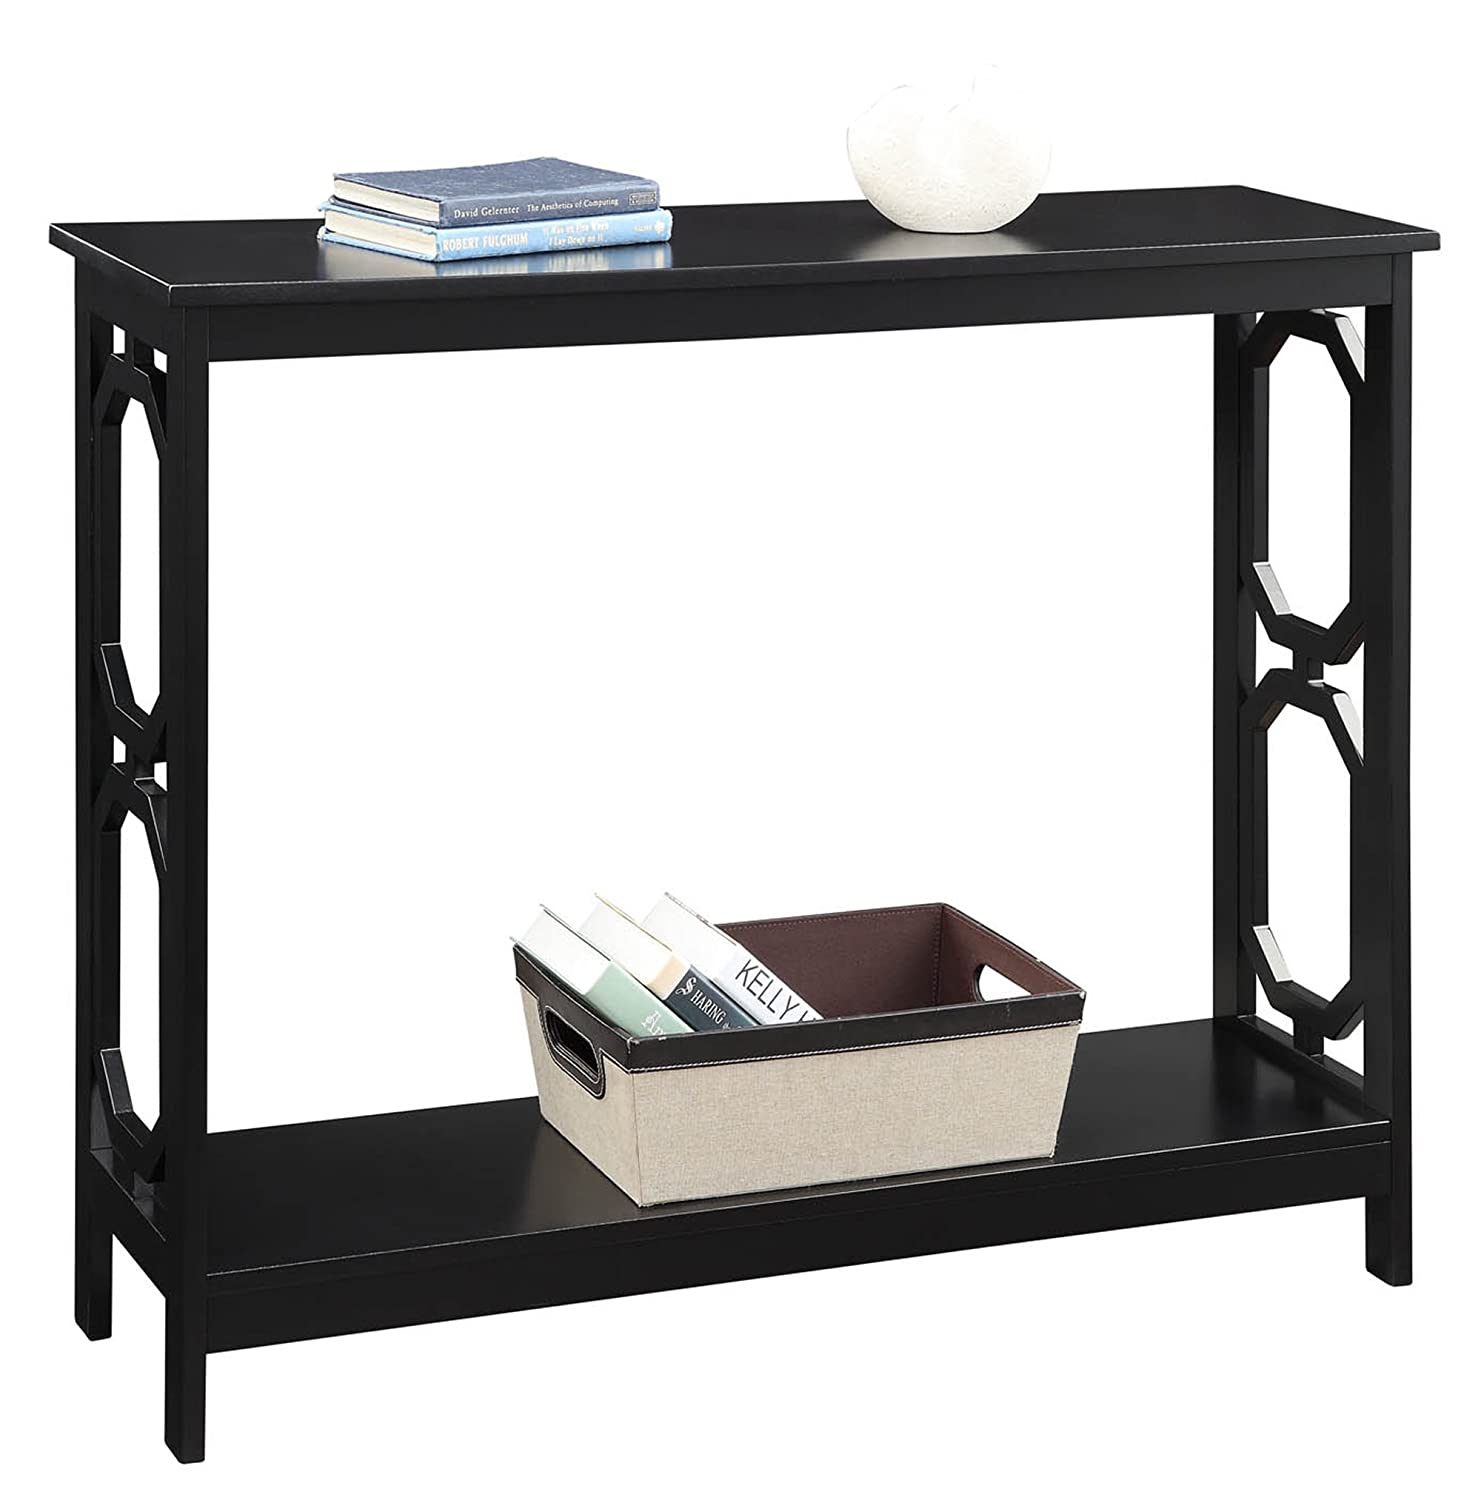 Convenience Concepts Omega Console Table, Black